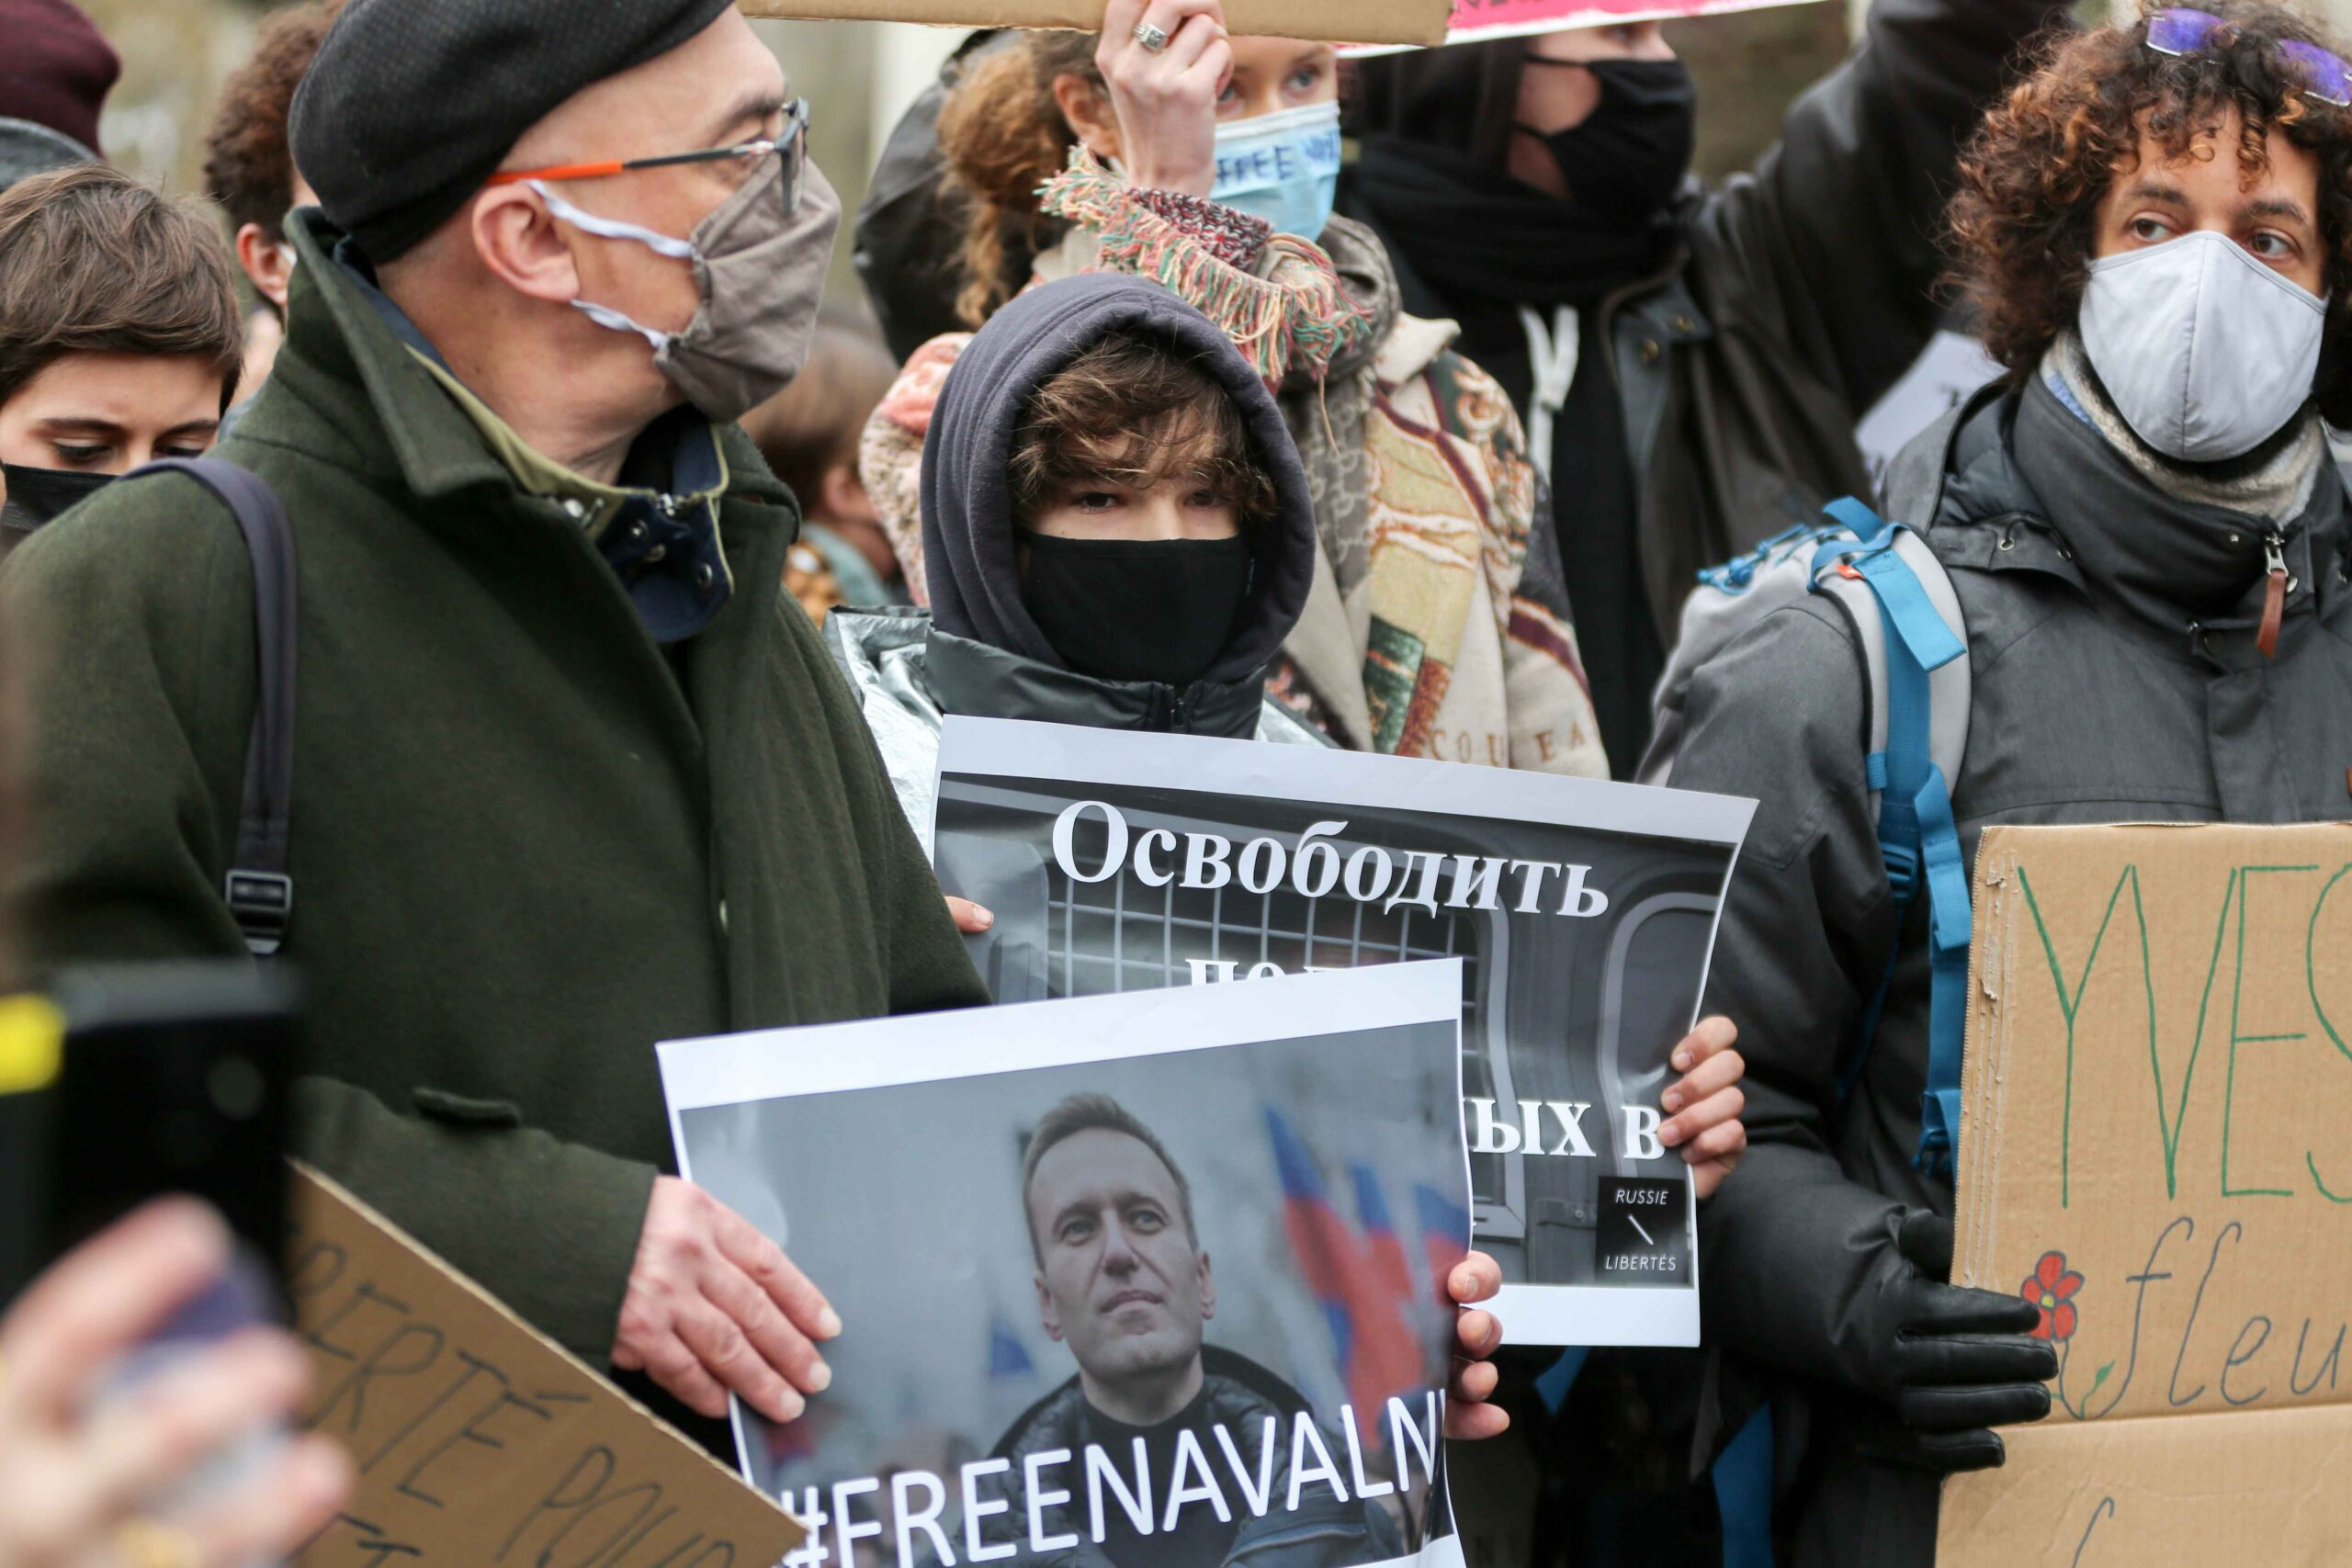 Protesters hold placards during a rally in support of jailed opposition leader Alexei Navalny in place du Trocadéro, in Paris on January 23, 2021. Navalny, 44, was detained last Sunday upon returning to Moscow after five months in Germany recovering from